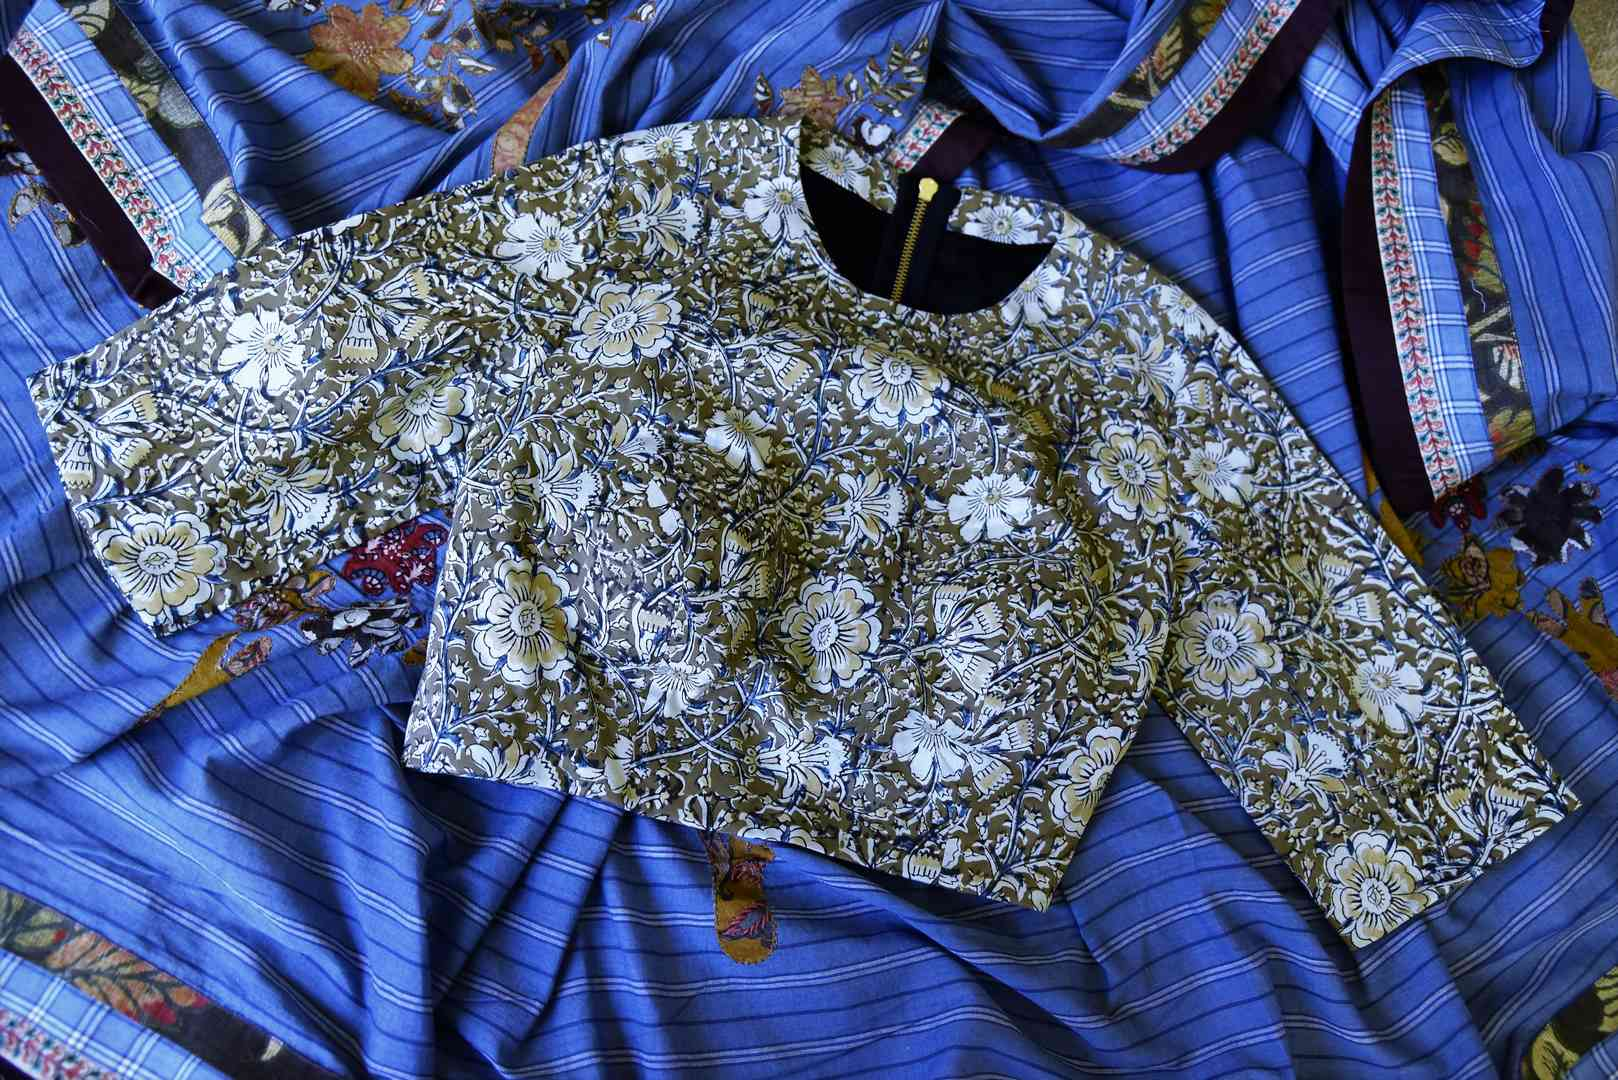 Buy blue linen sari with saree blouse online in USA and Kalamkari applique. Add tasteful Indian woven saris to your ethnic wardrobe from Pure Elegance Indian fashion store in USA. We have an exclusive range of Indian designer sarees, wedding saris, handloom sarees to make your Indian look absolutely captivating.-blouse